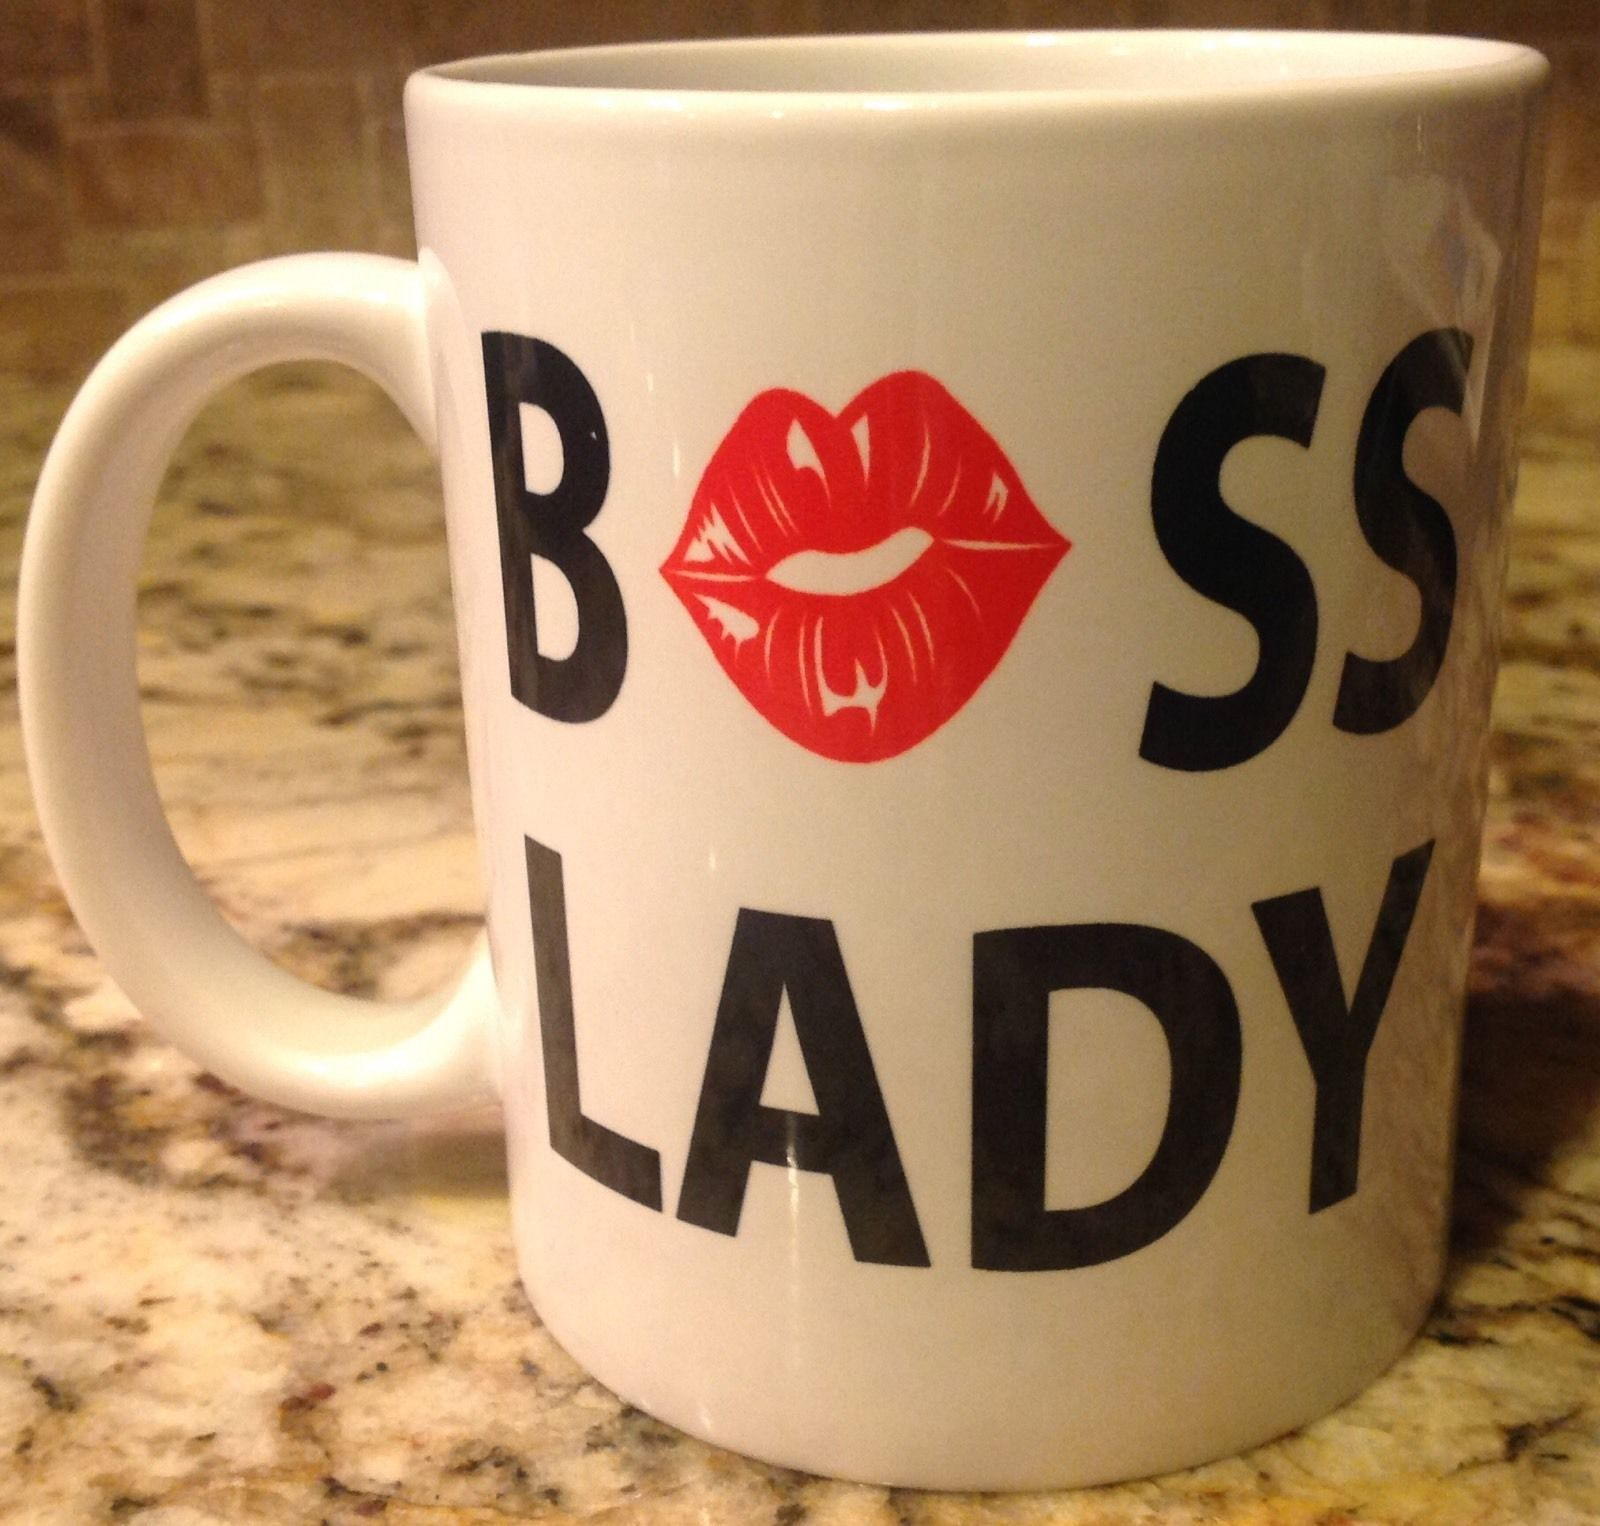 Ceramic Coffee Tea Mug Cup11oz BOSS LADY Funny Great Gift New